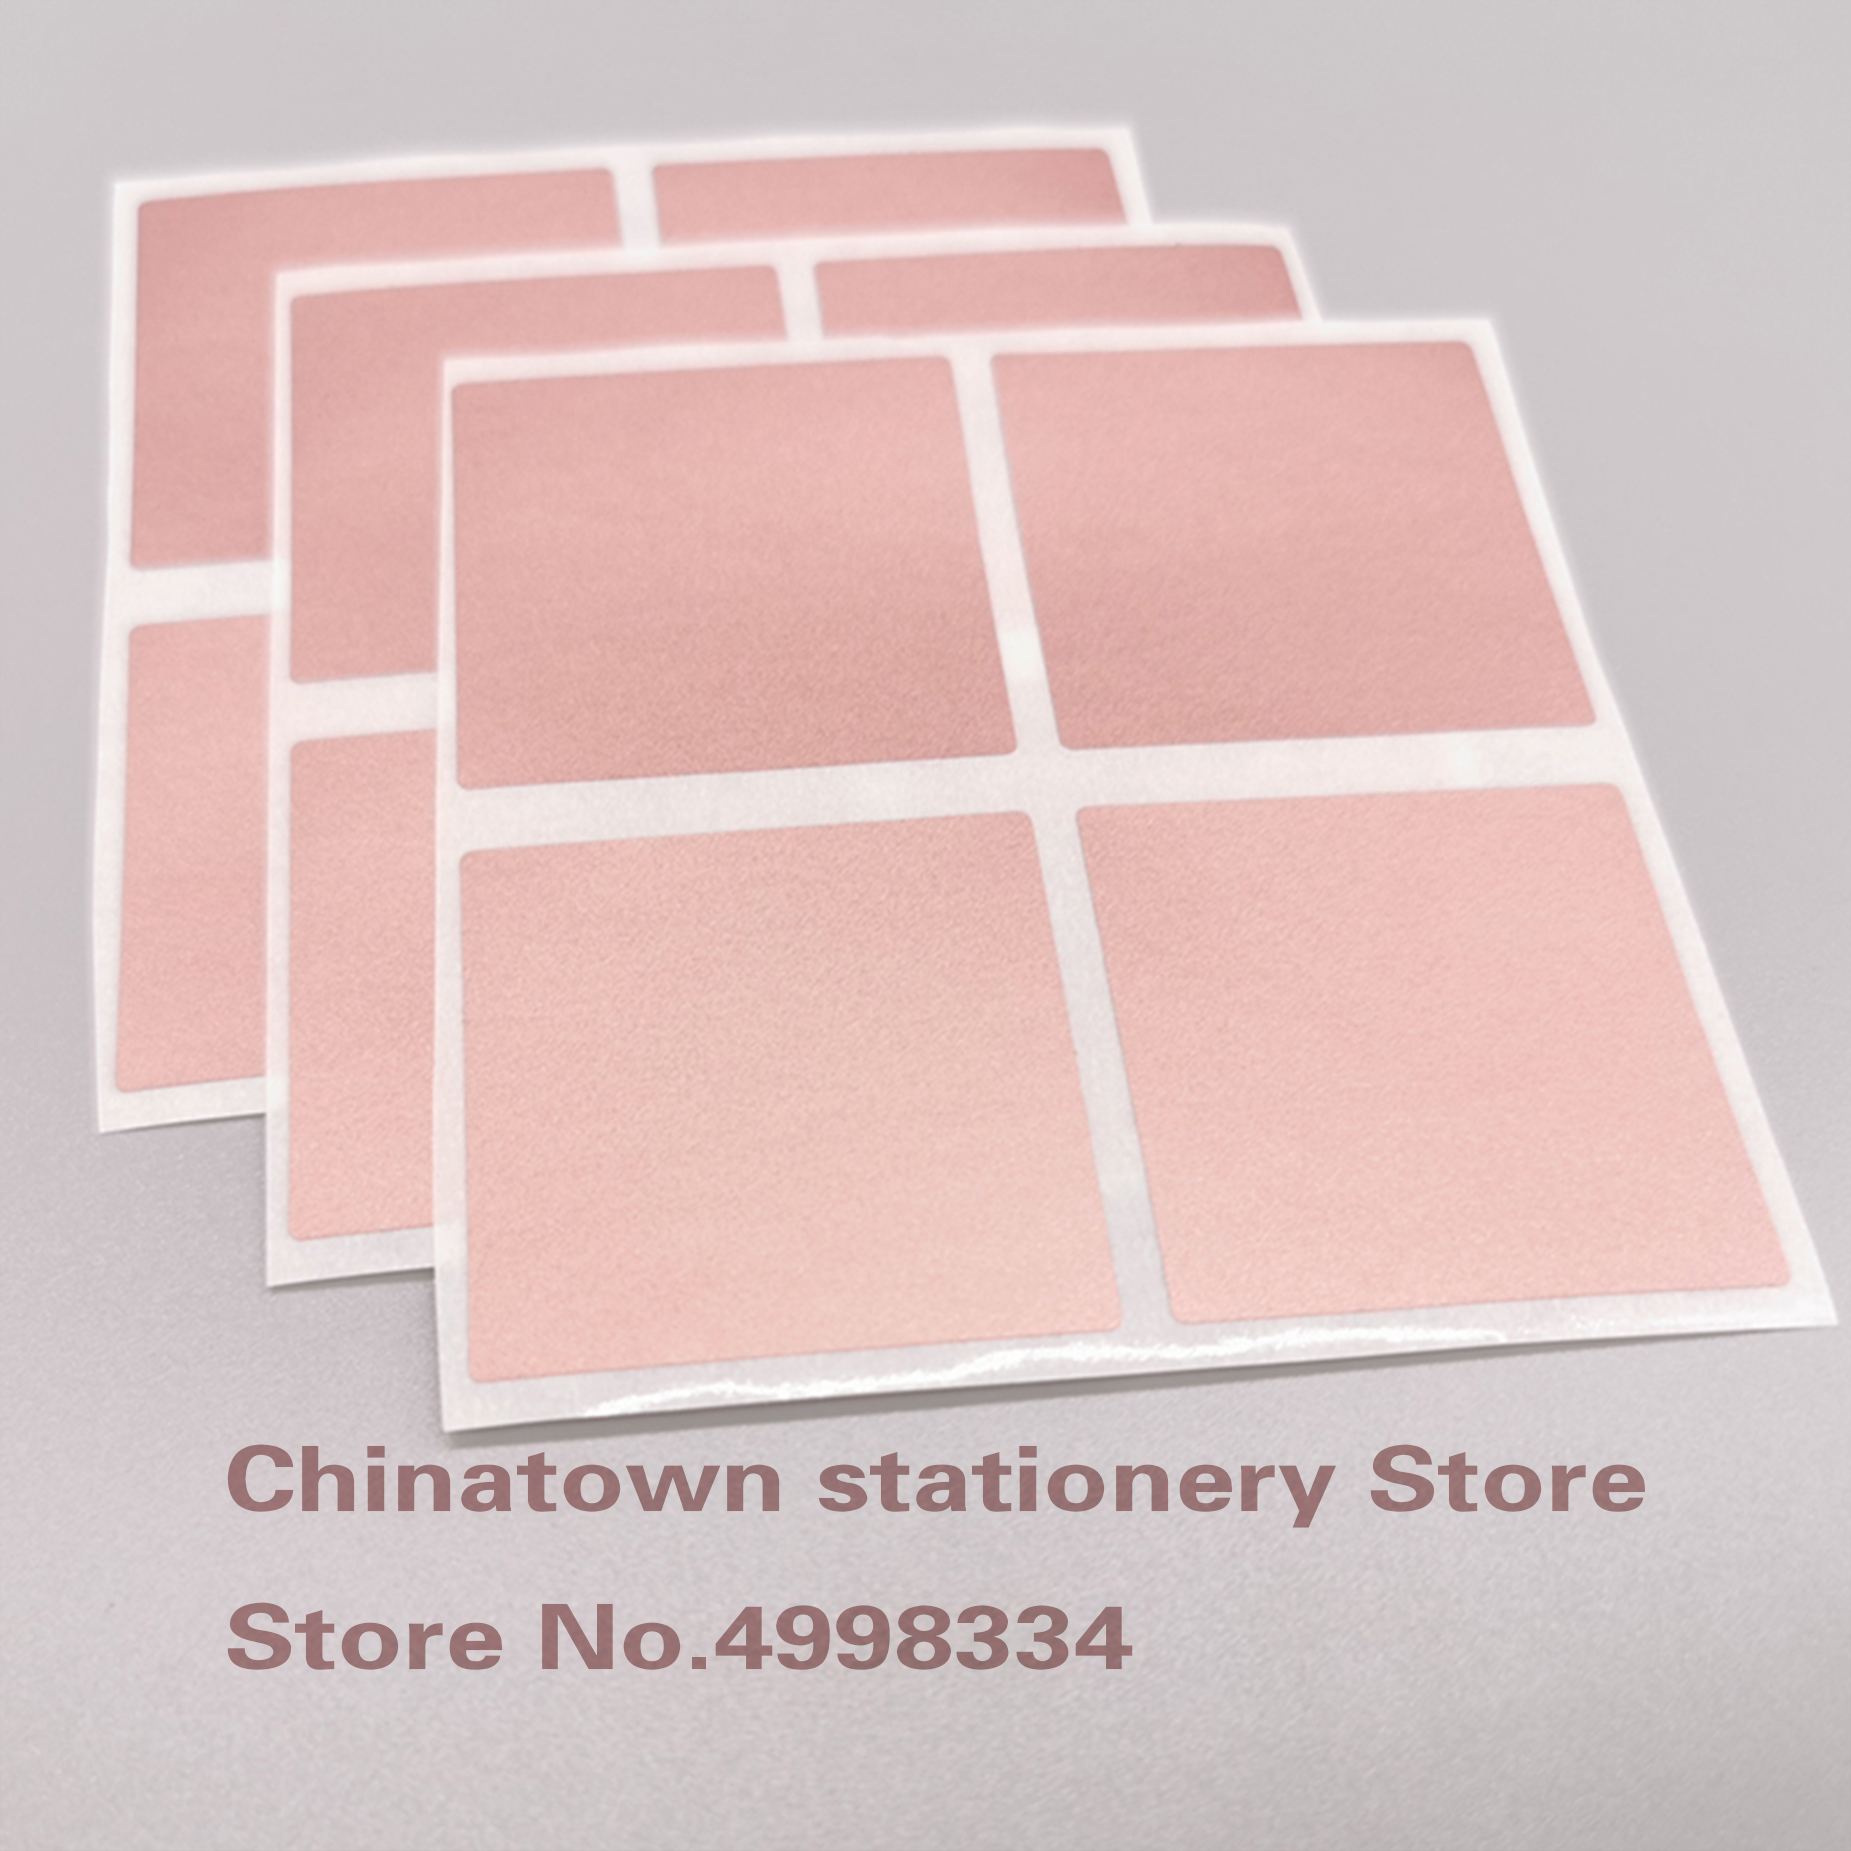 50pcs 40mm Rose Gold Square Scratch Off Stickers Labels Tickets Promotional Games